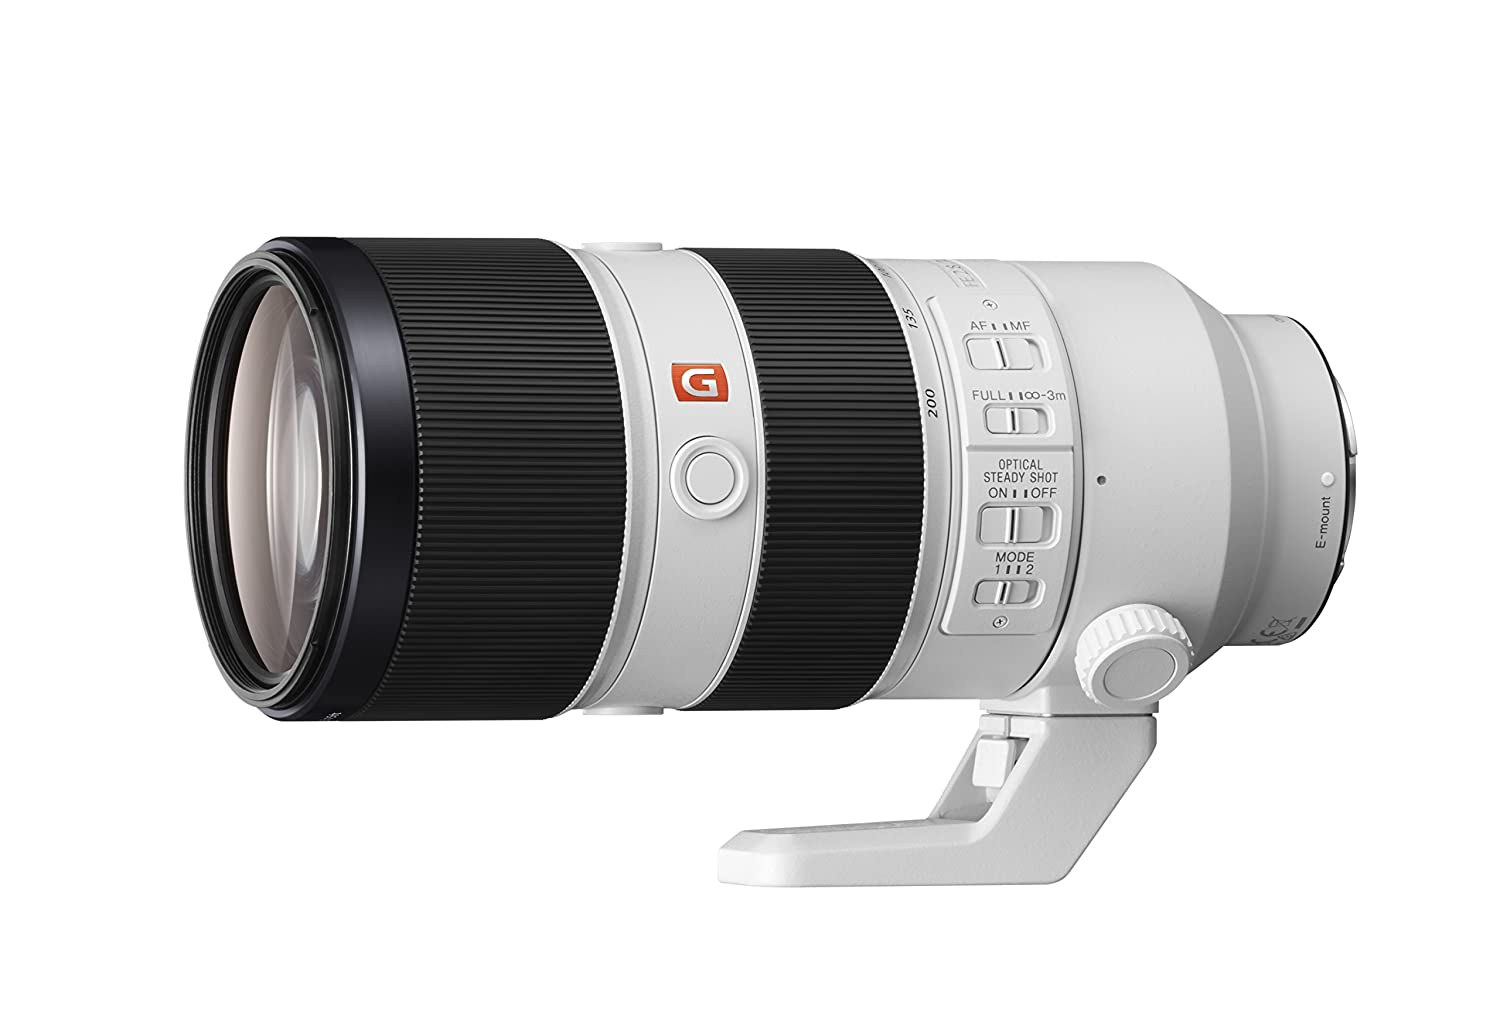 Sony 70-200mm f/2.8-22 FE 70-200mm F2.8 GM OOS Fixed Zoom Lens, White (SEL70200GM)